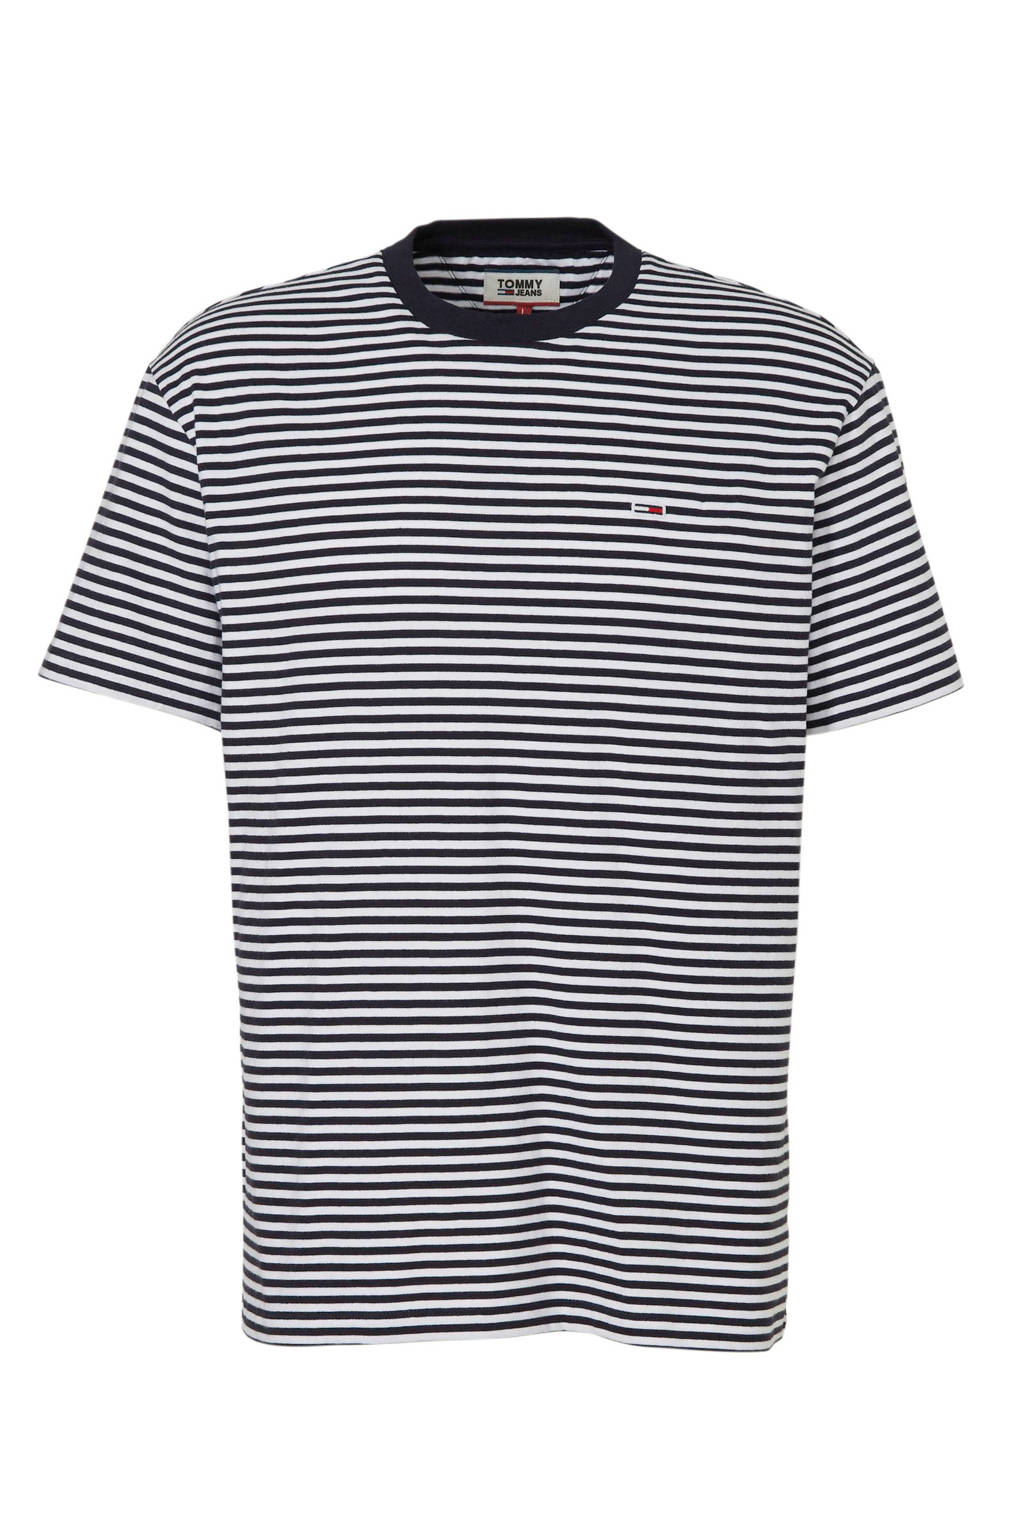 Tommy Jeans T-shirt met streepdessin marine, marine/ wit